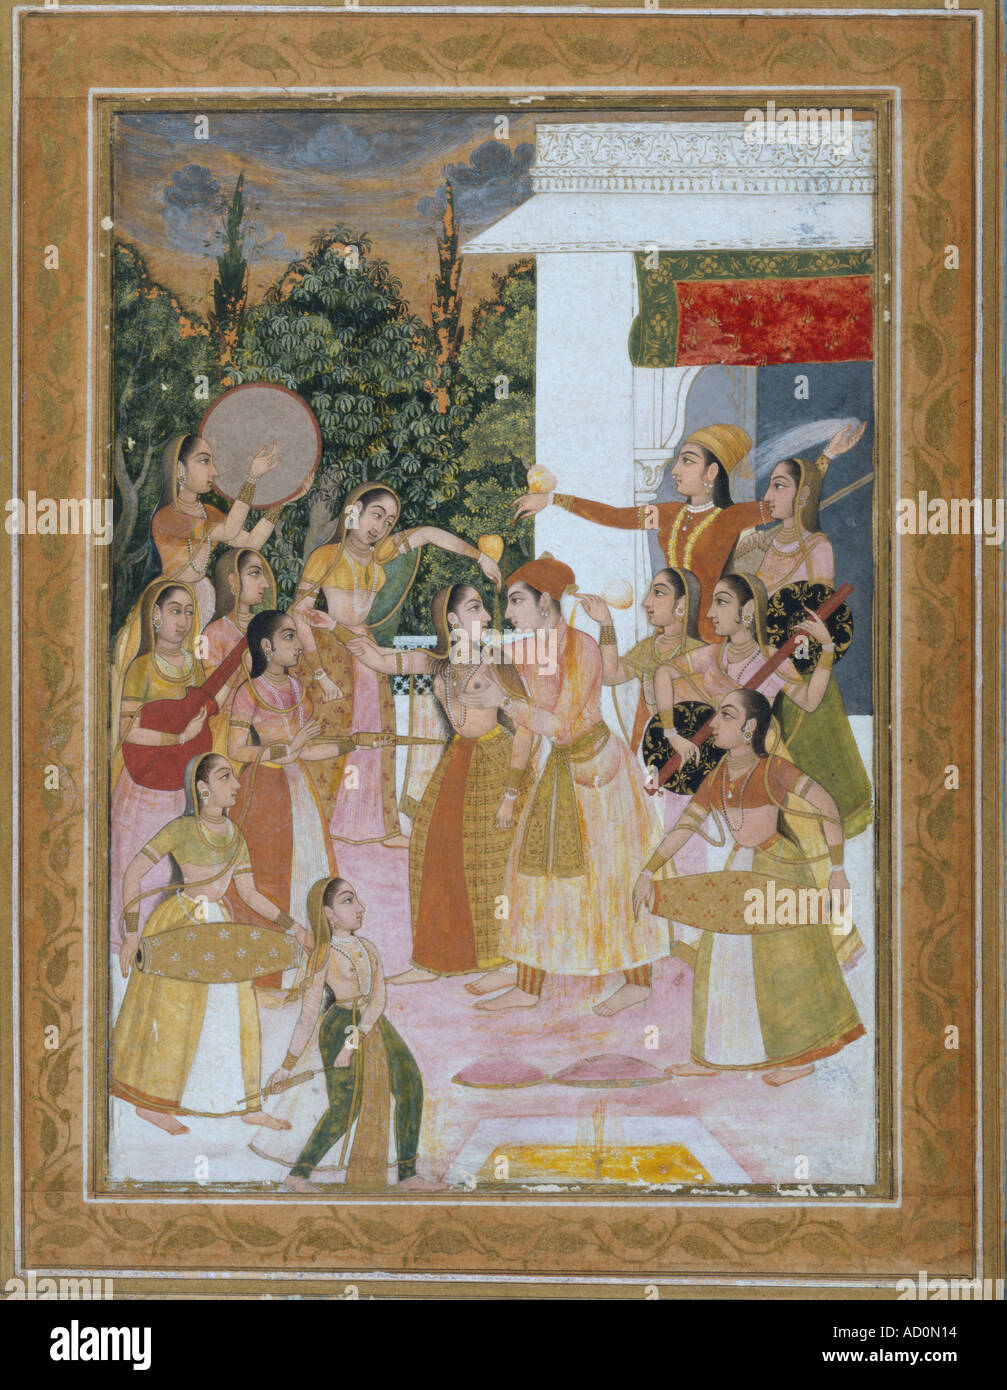 Indian painting. Gouache on paper. Mughal, 1750. - Stock Image